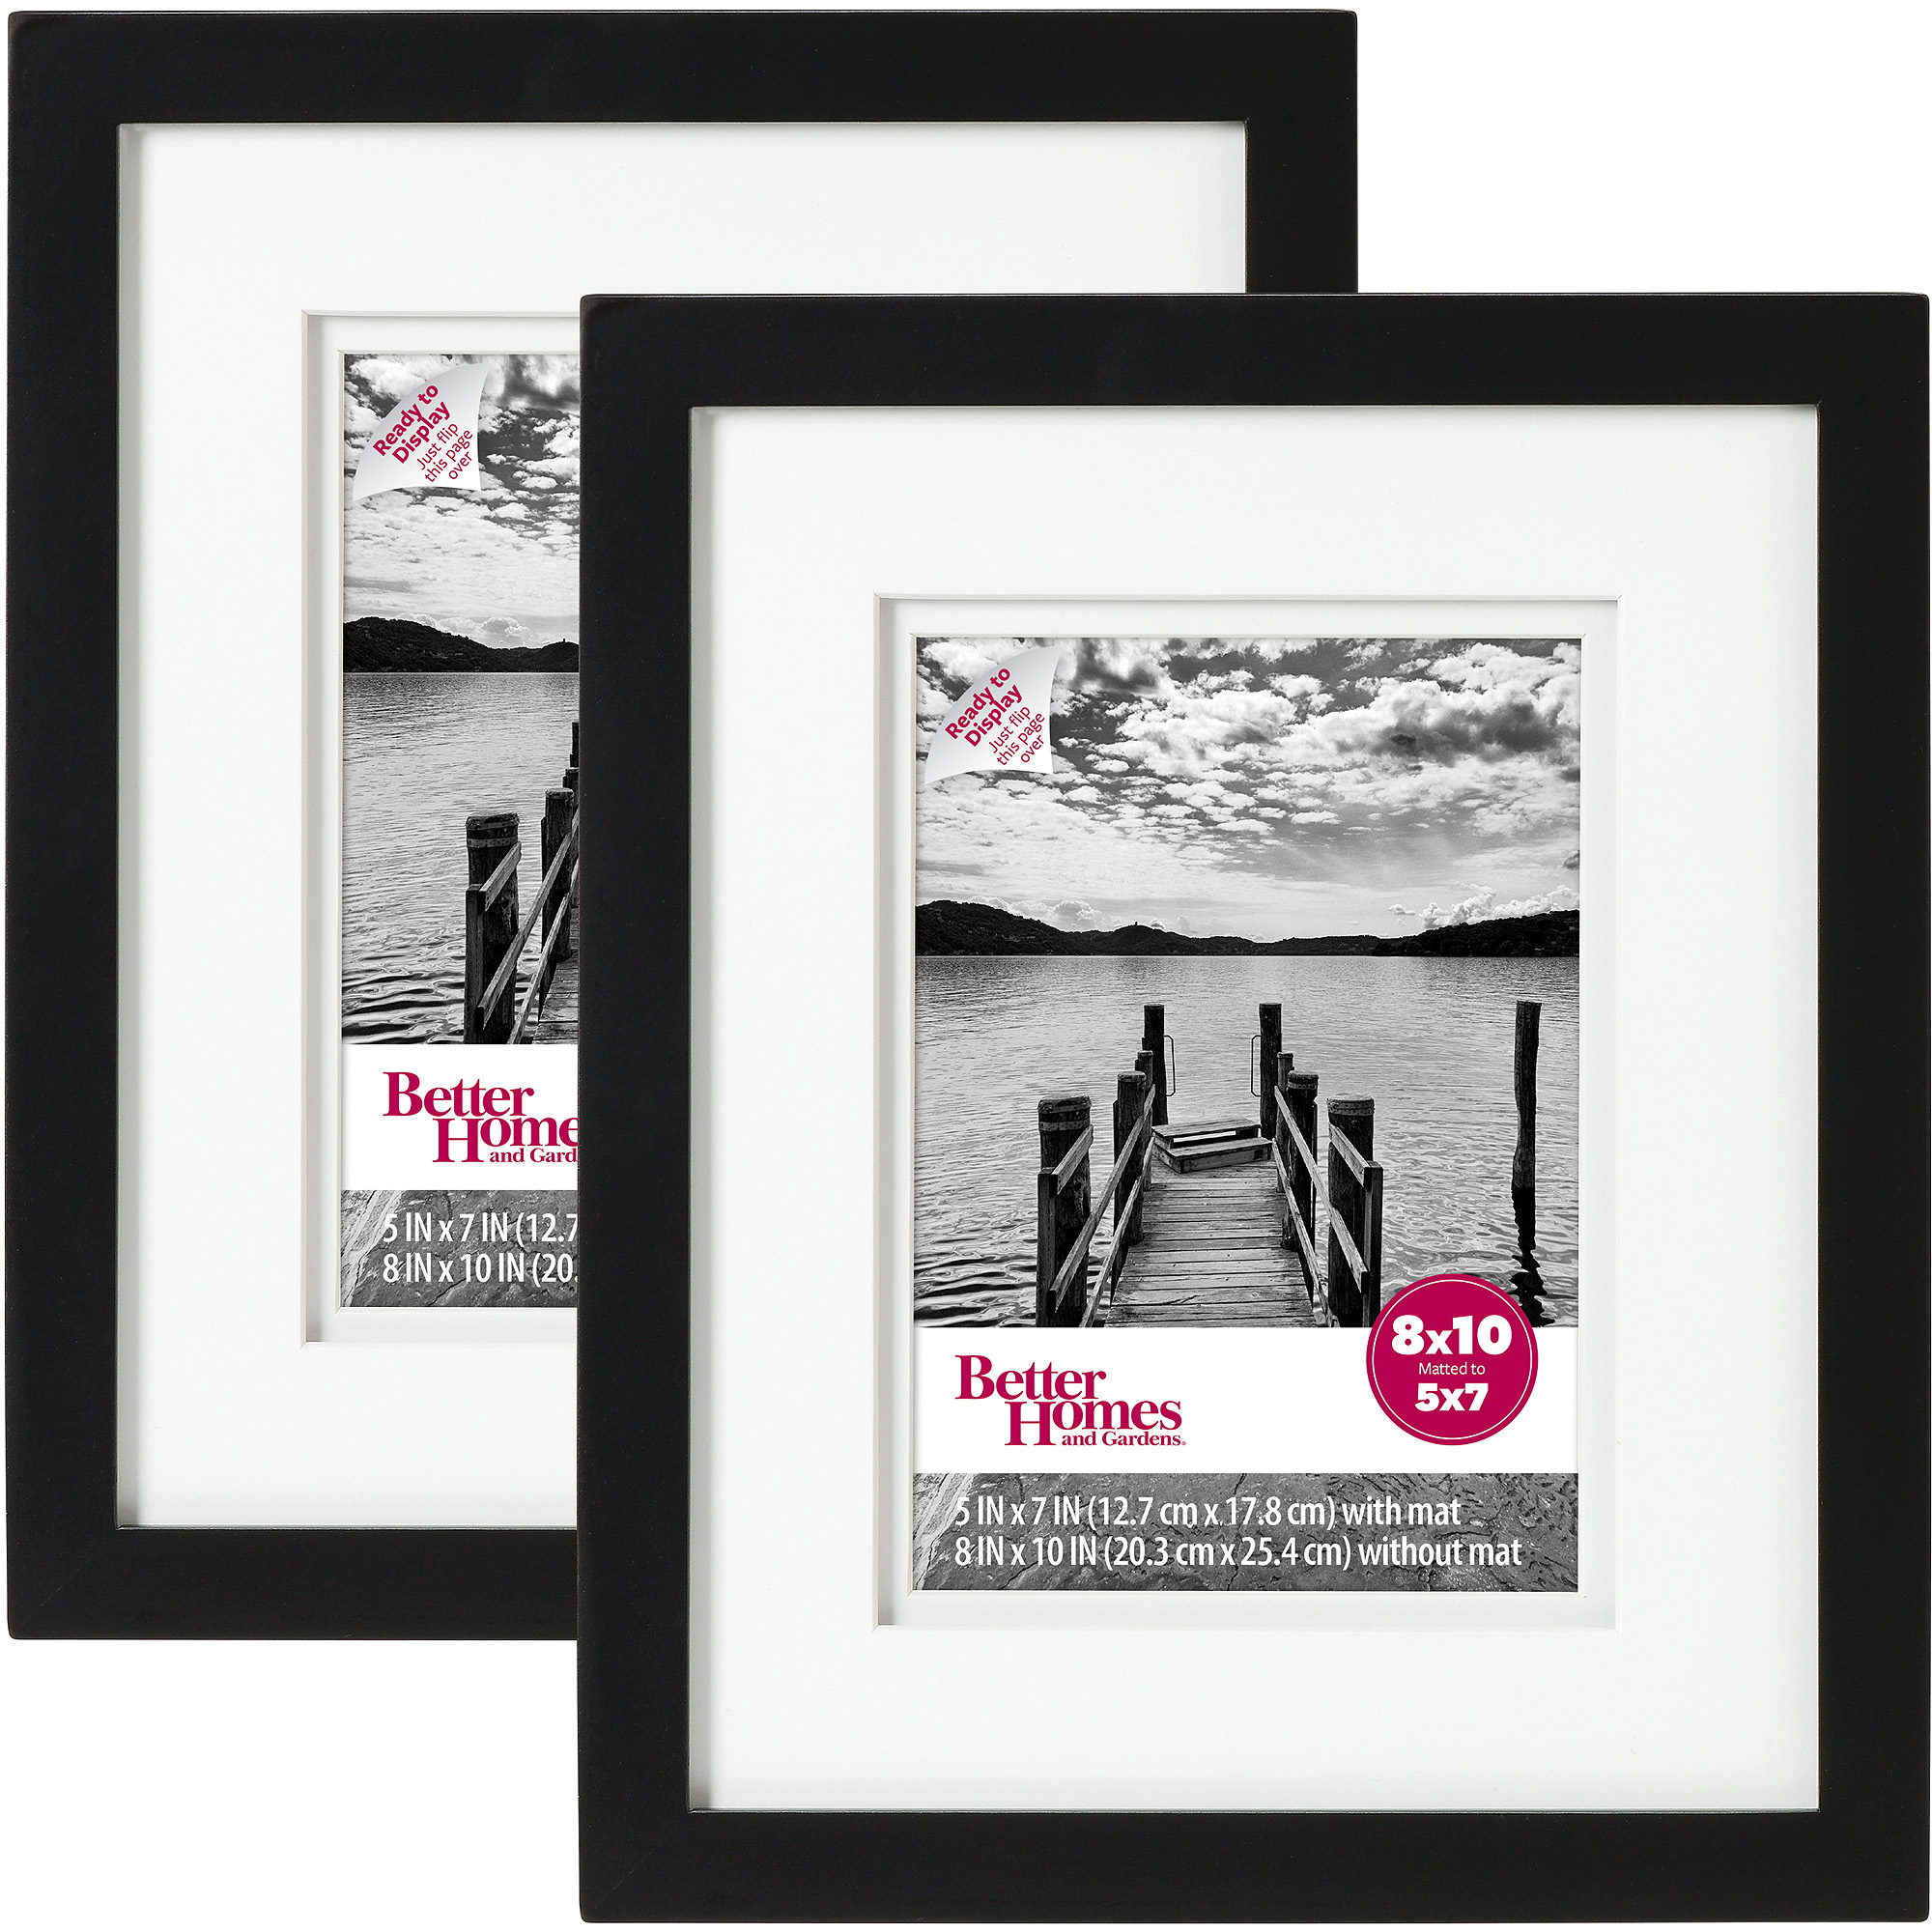 "Better Homes and Gardens Picture Frame Black, Set of 2, 8""x10"""